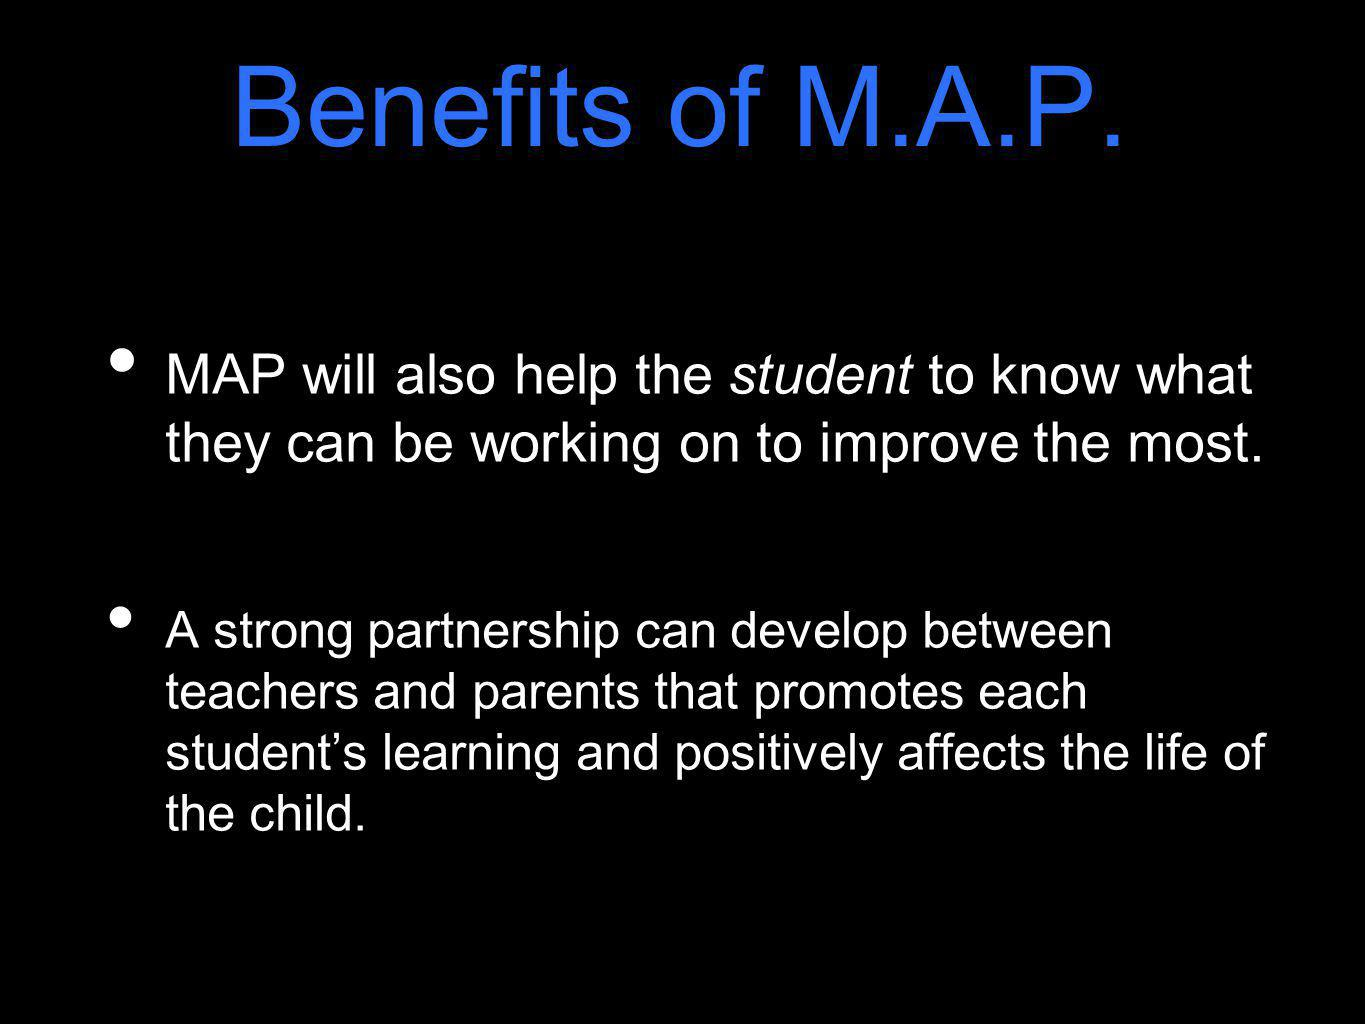 Benefits of M.A.P. MAP will also help the student to know what they can be working on to improve the most. A strong partnership can develop between te